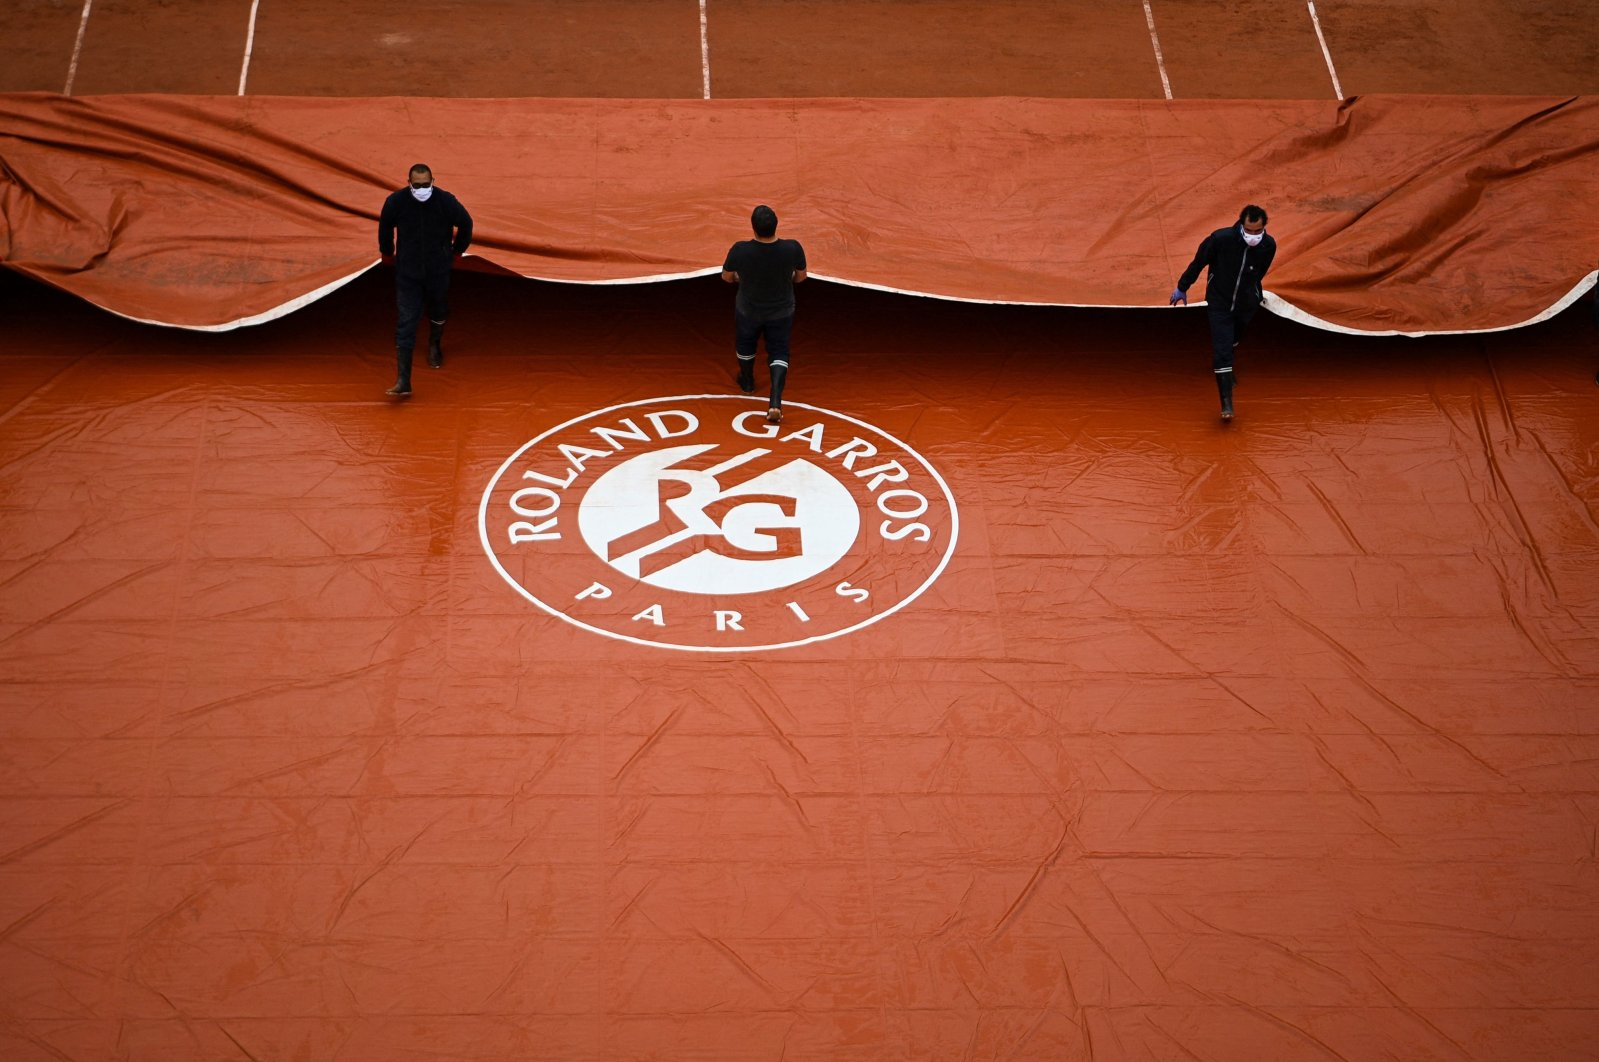 Ground staff members take off the cover across the Suzanne Lenglen court at The Roland Garros 2020 French Open in Paris, France, Sept. 28, 2020. (AFP Photo)